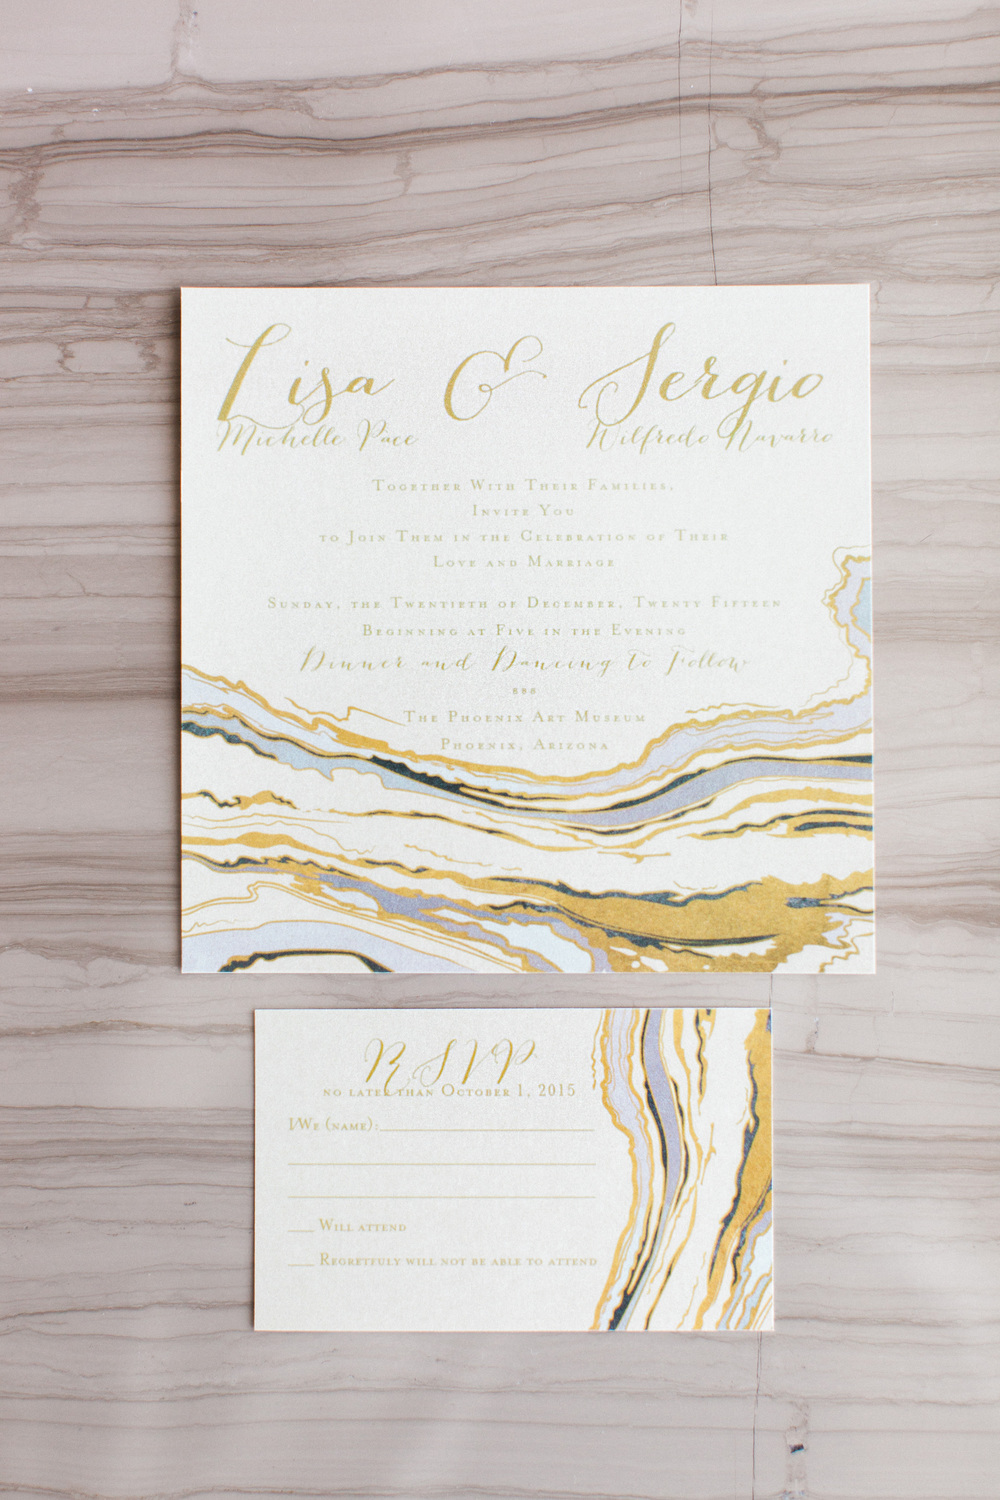 scottsdale wedding planner, phoenix wedding planner, arizona wedding, arizona wedding planner, invitation, wedding invitation,